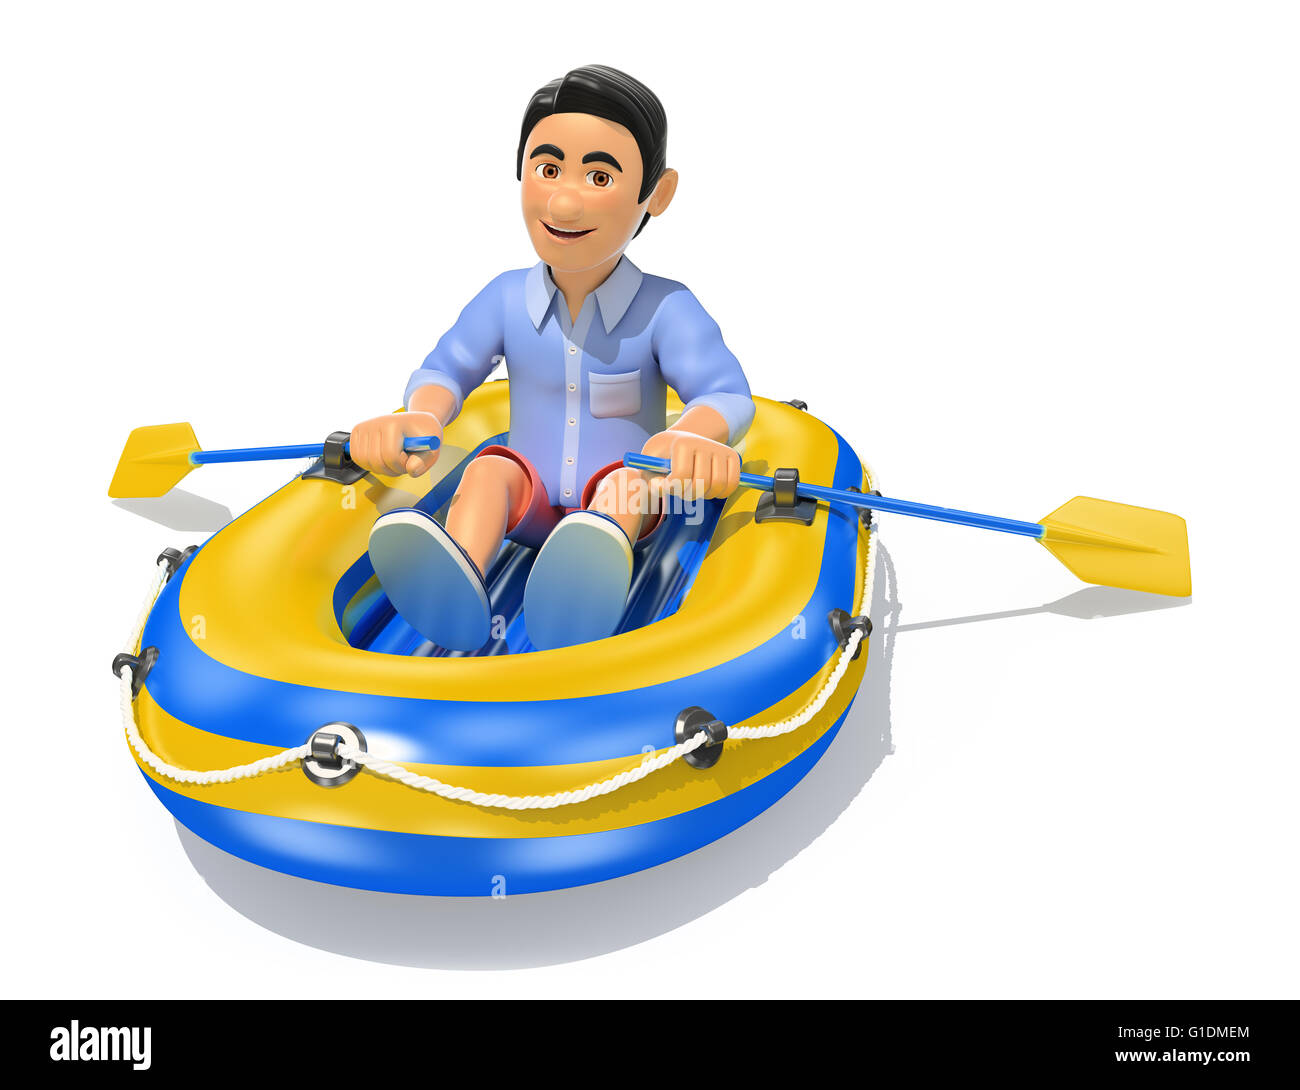 3d young people illustration. Man in shorts paddling a inflatable boat. Isolated white background. - Stock Image